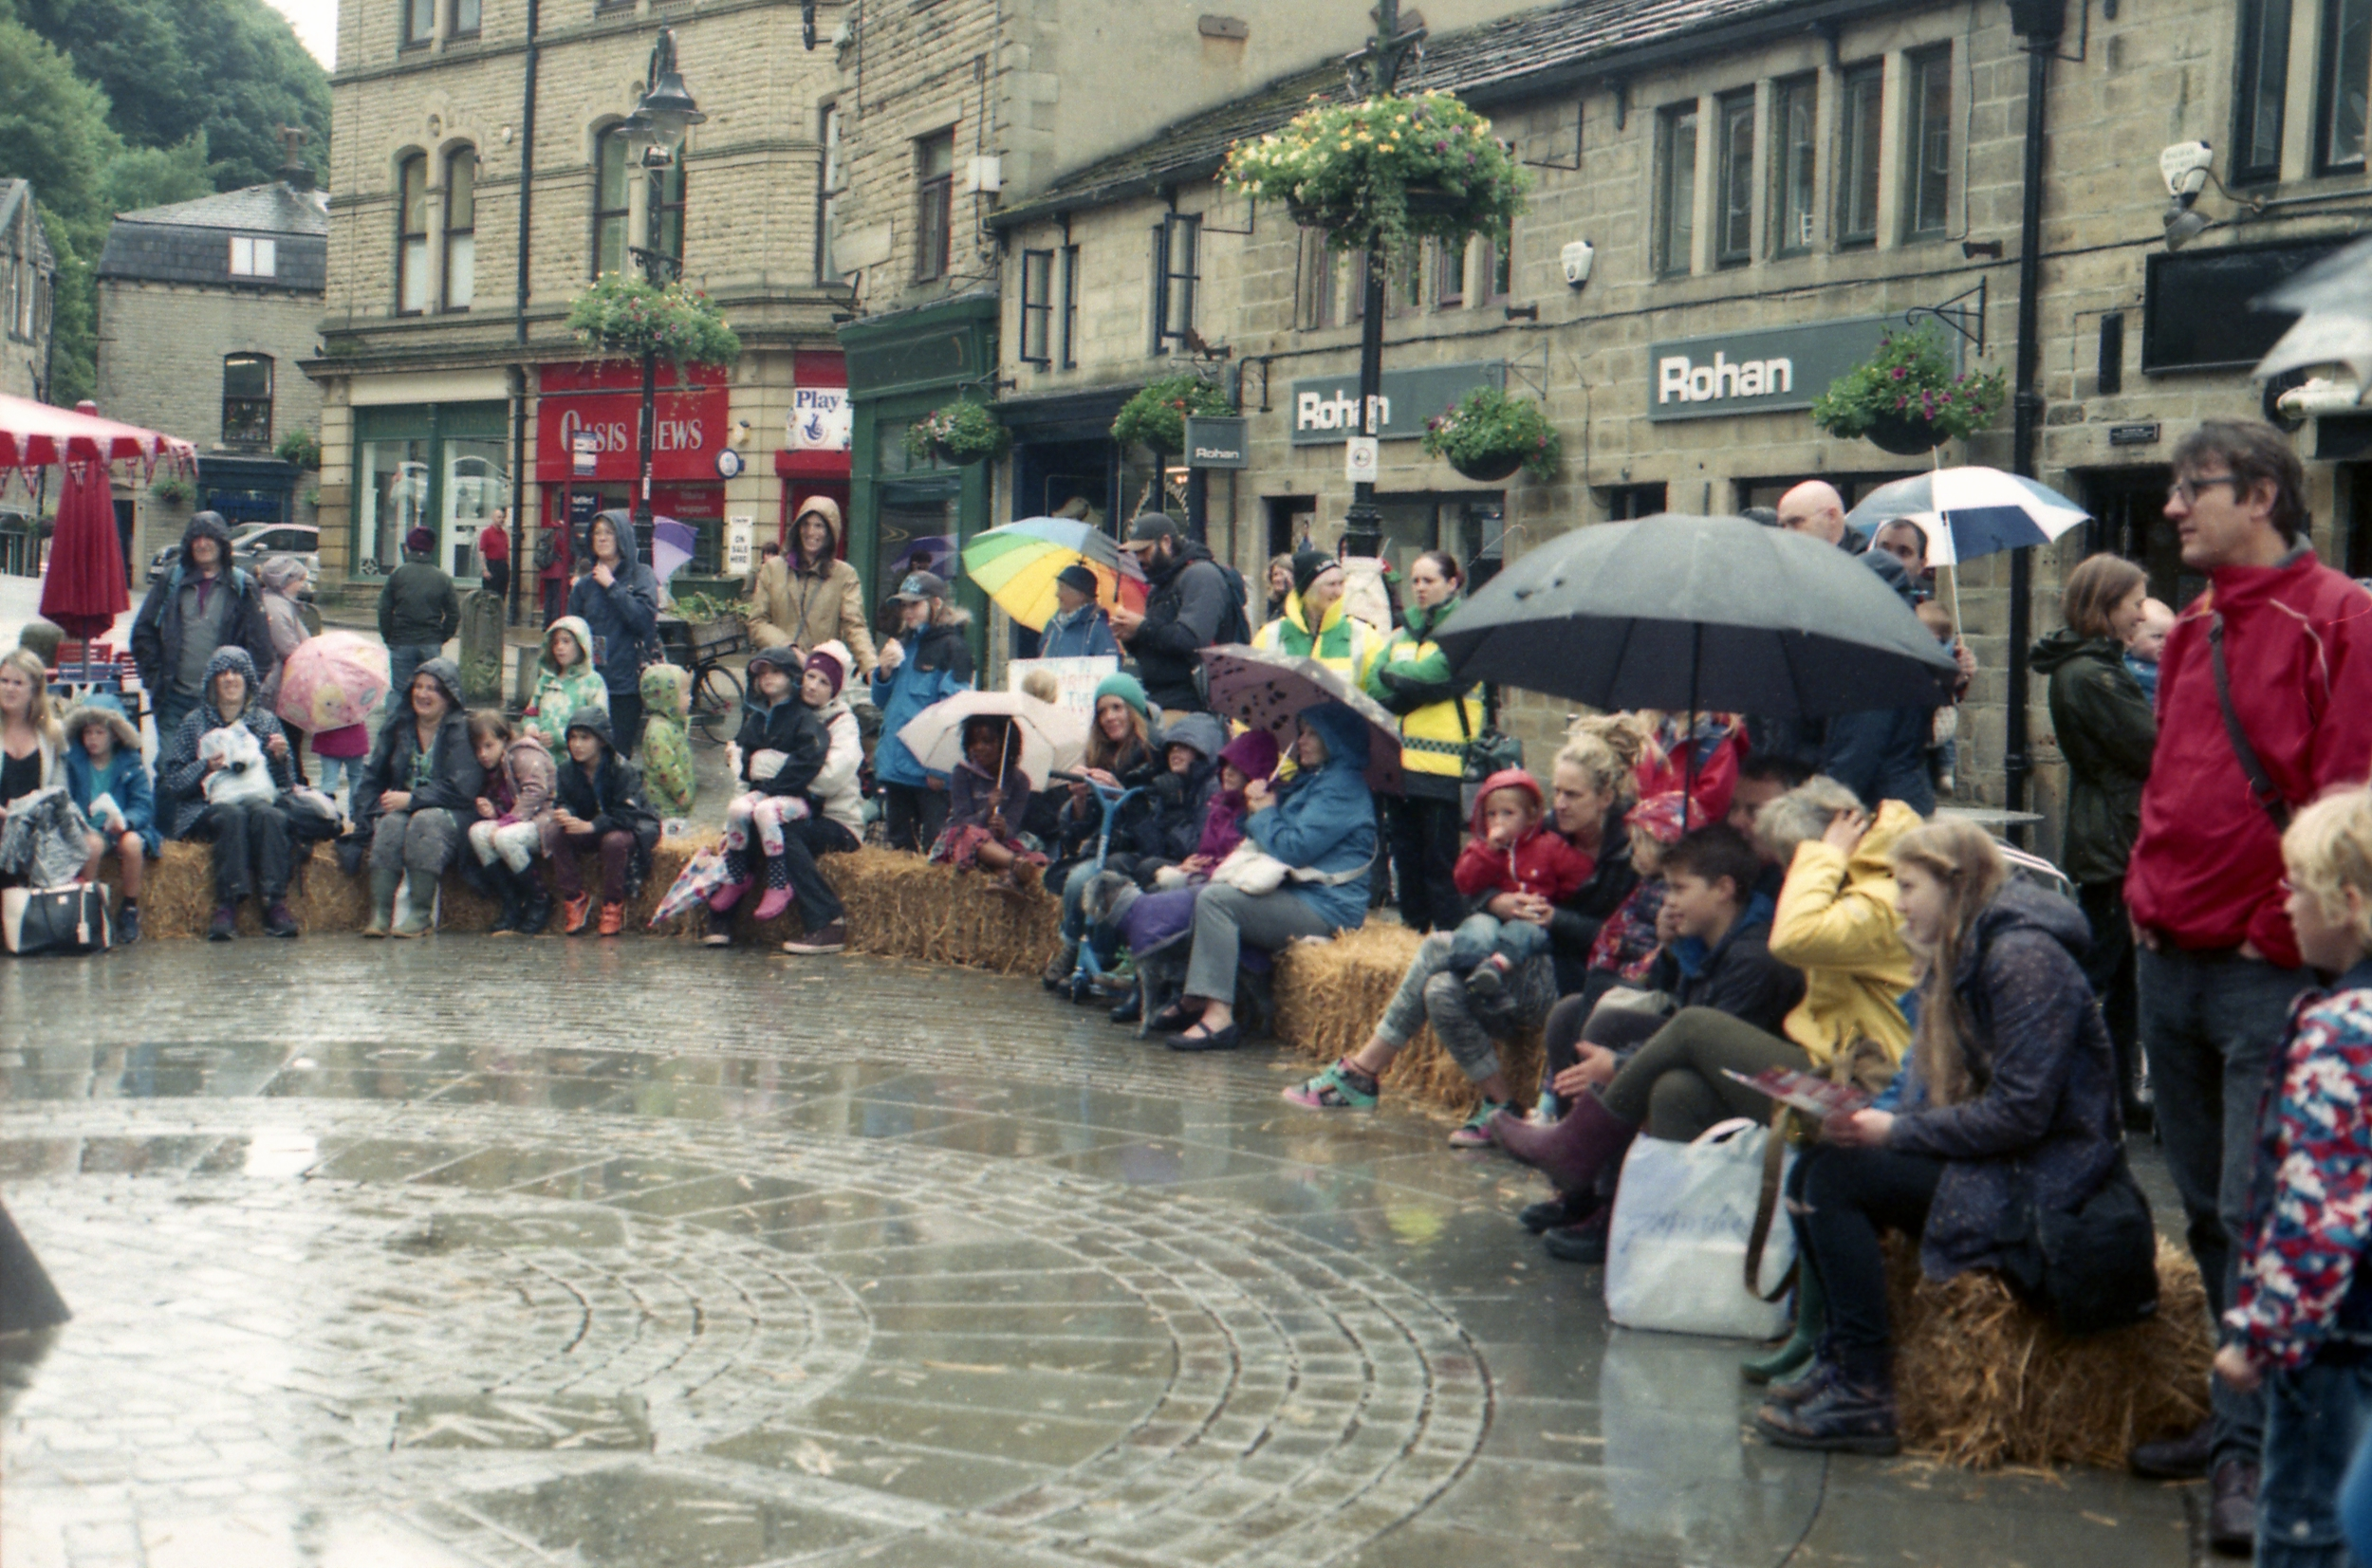 184/366 - We spent the day in Hebden Bridge with my parents and it rained... a lot. I still love it there though, so I'll forgive the weather.